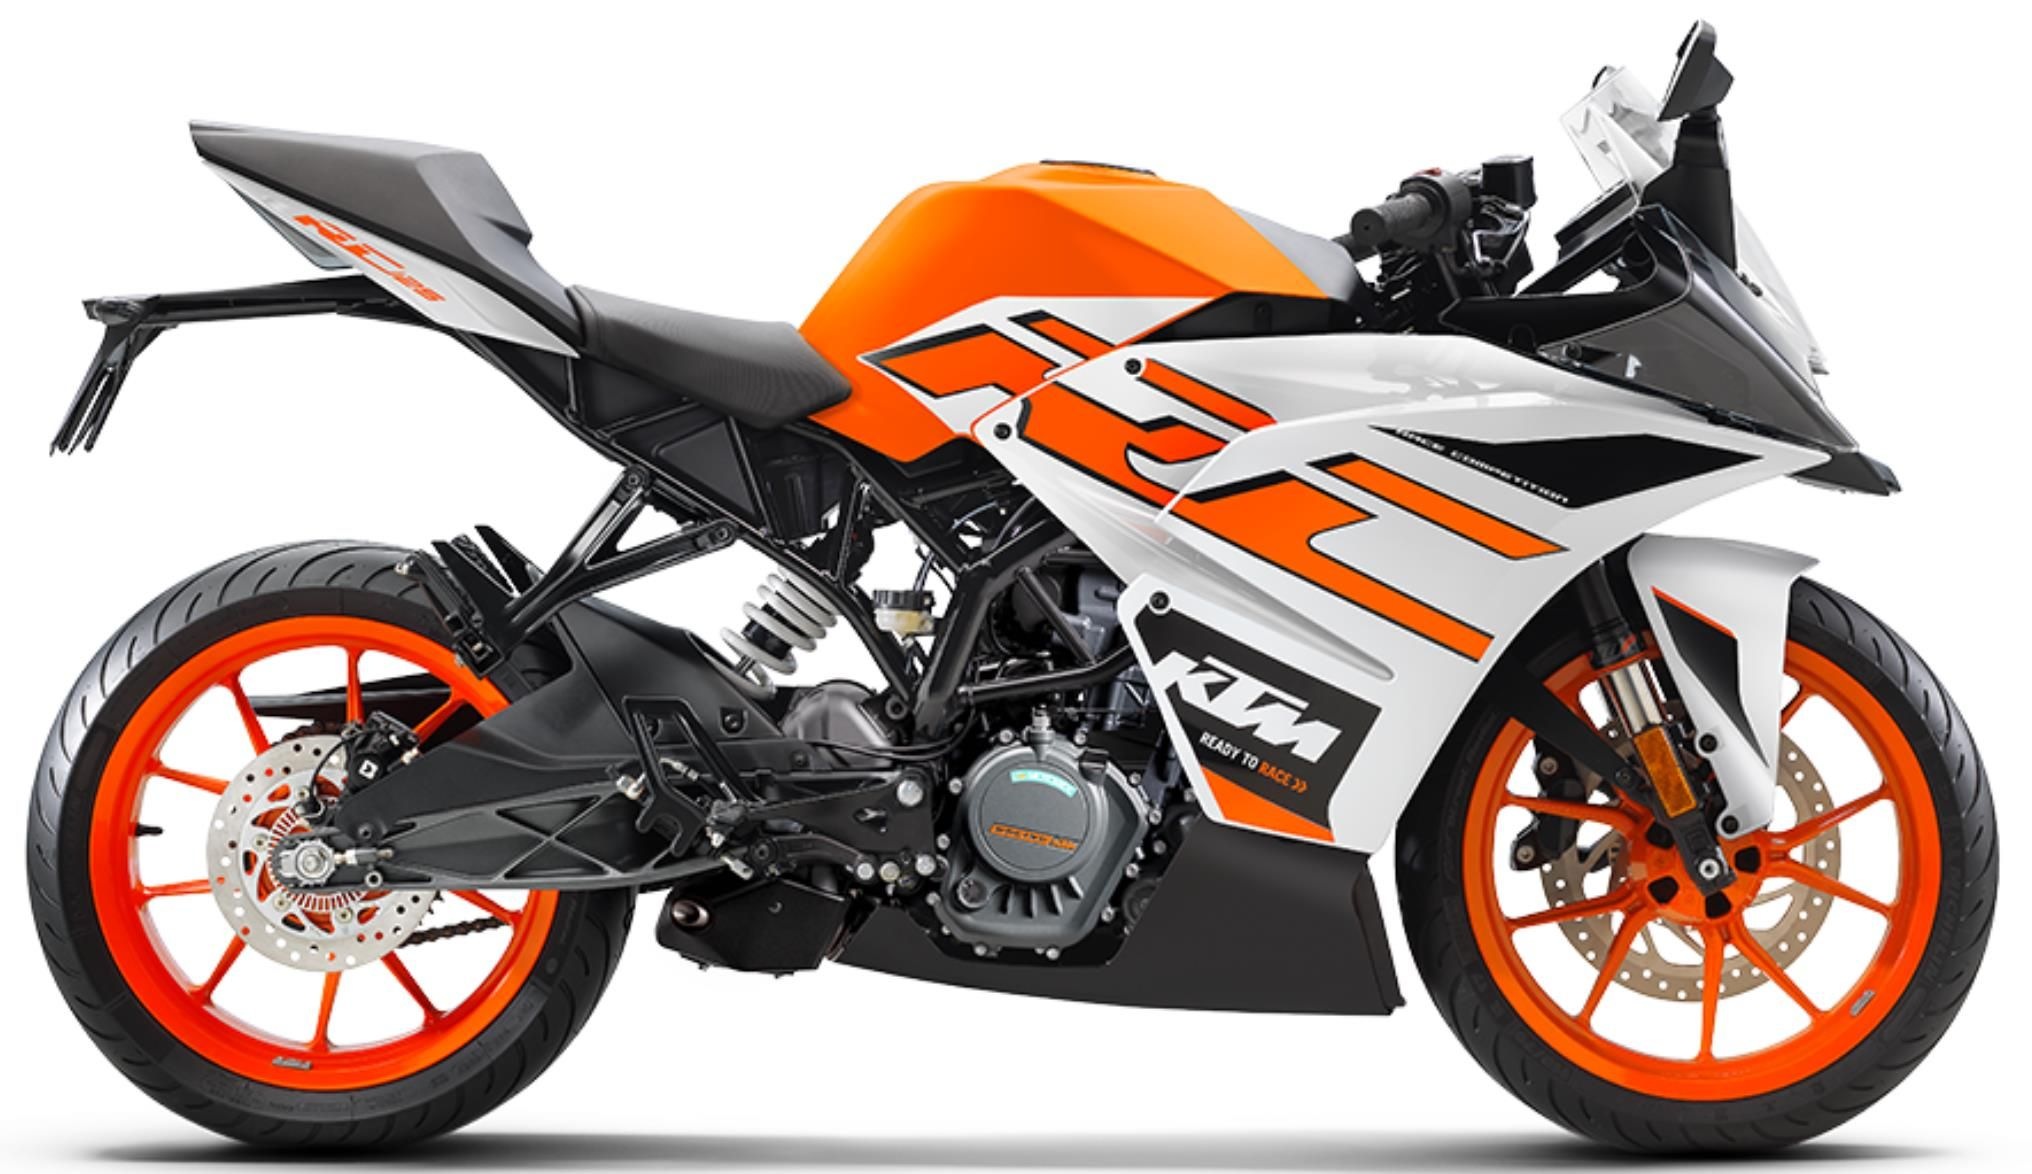 2020 Ktm Rc 125 Price In India Explore Rc 125 Specifications Mileage Top Speed Colors Photos Pros And Cons Check Out Rc 125 User R Ktm Rc Ktm Ktm Rc 200